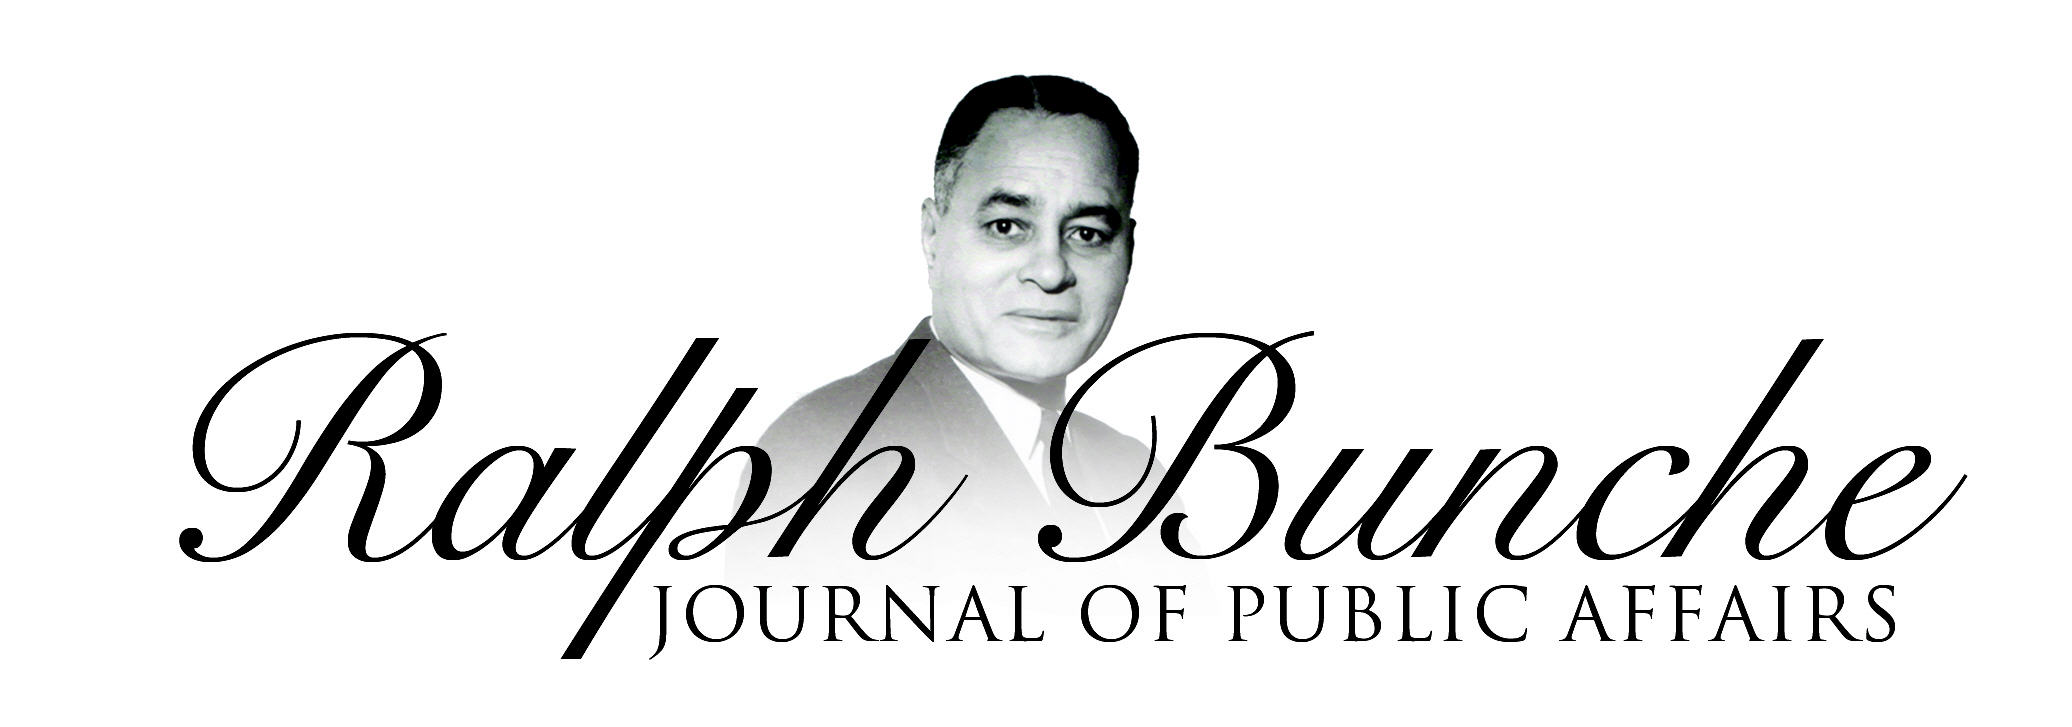 Ralph Bunche Journal of Public Affairs